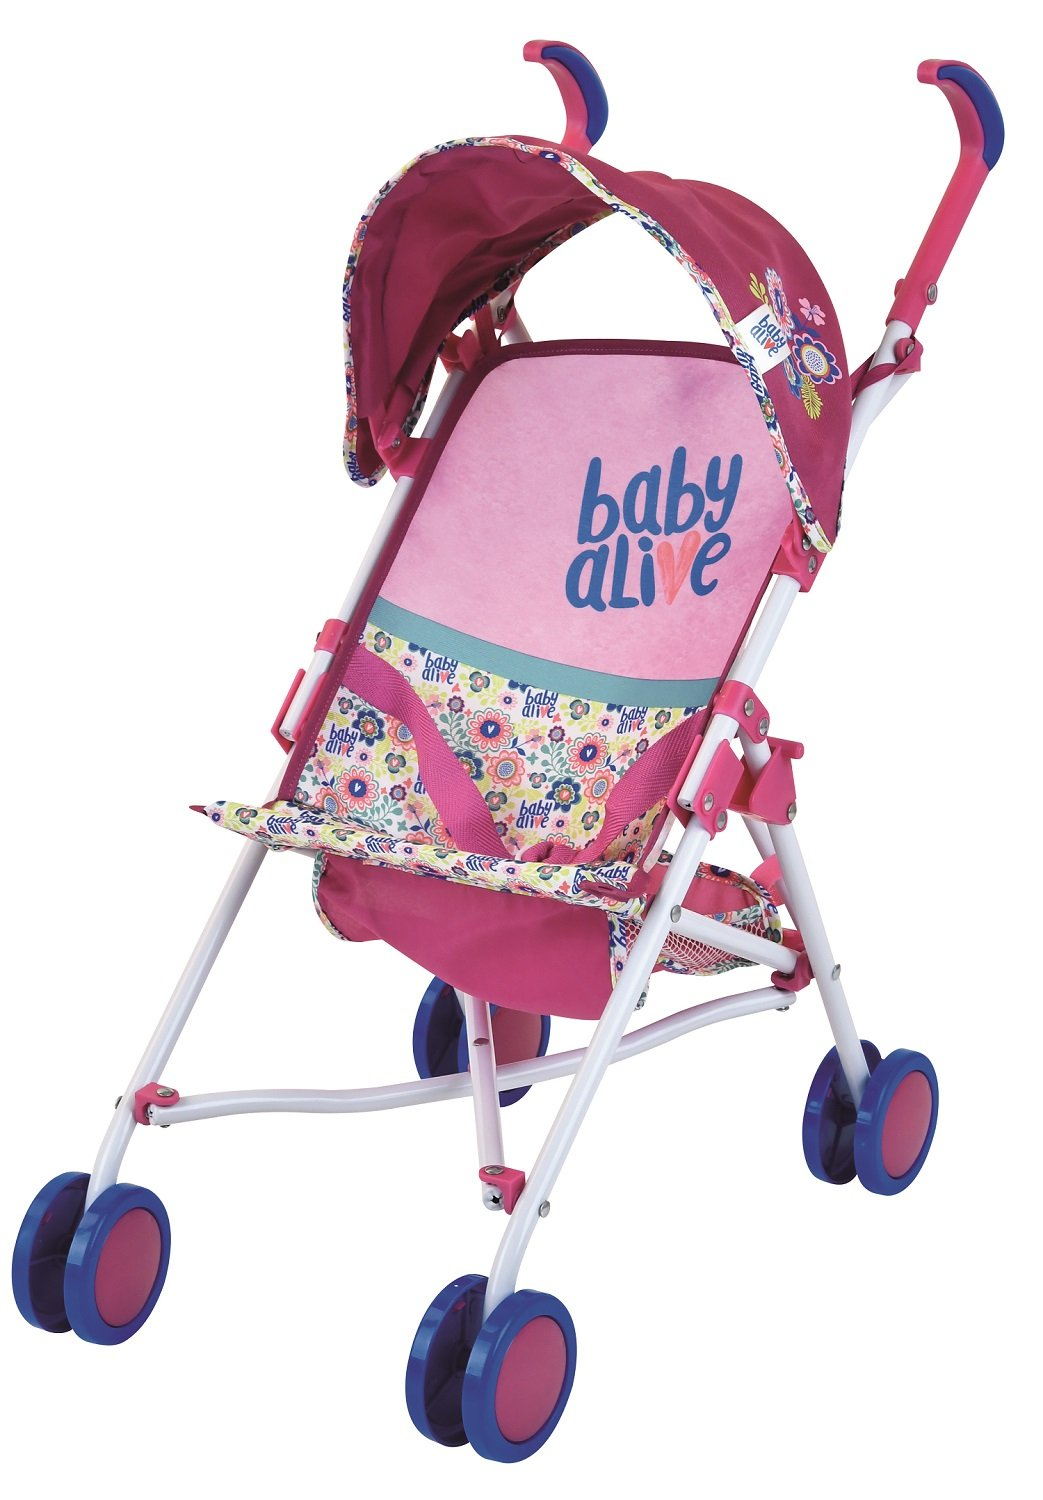 Baby Alive Doll Stroller Toy by Baby Alive